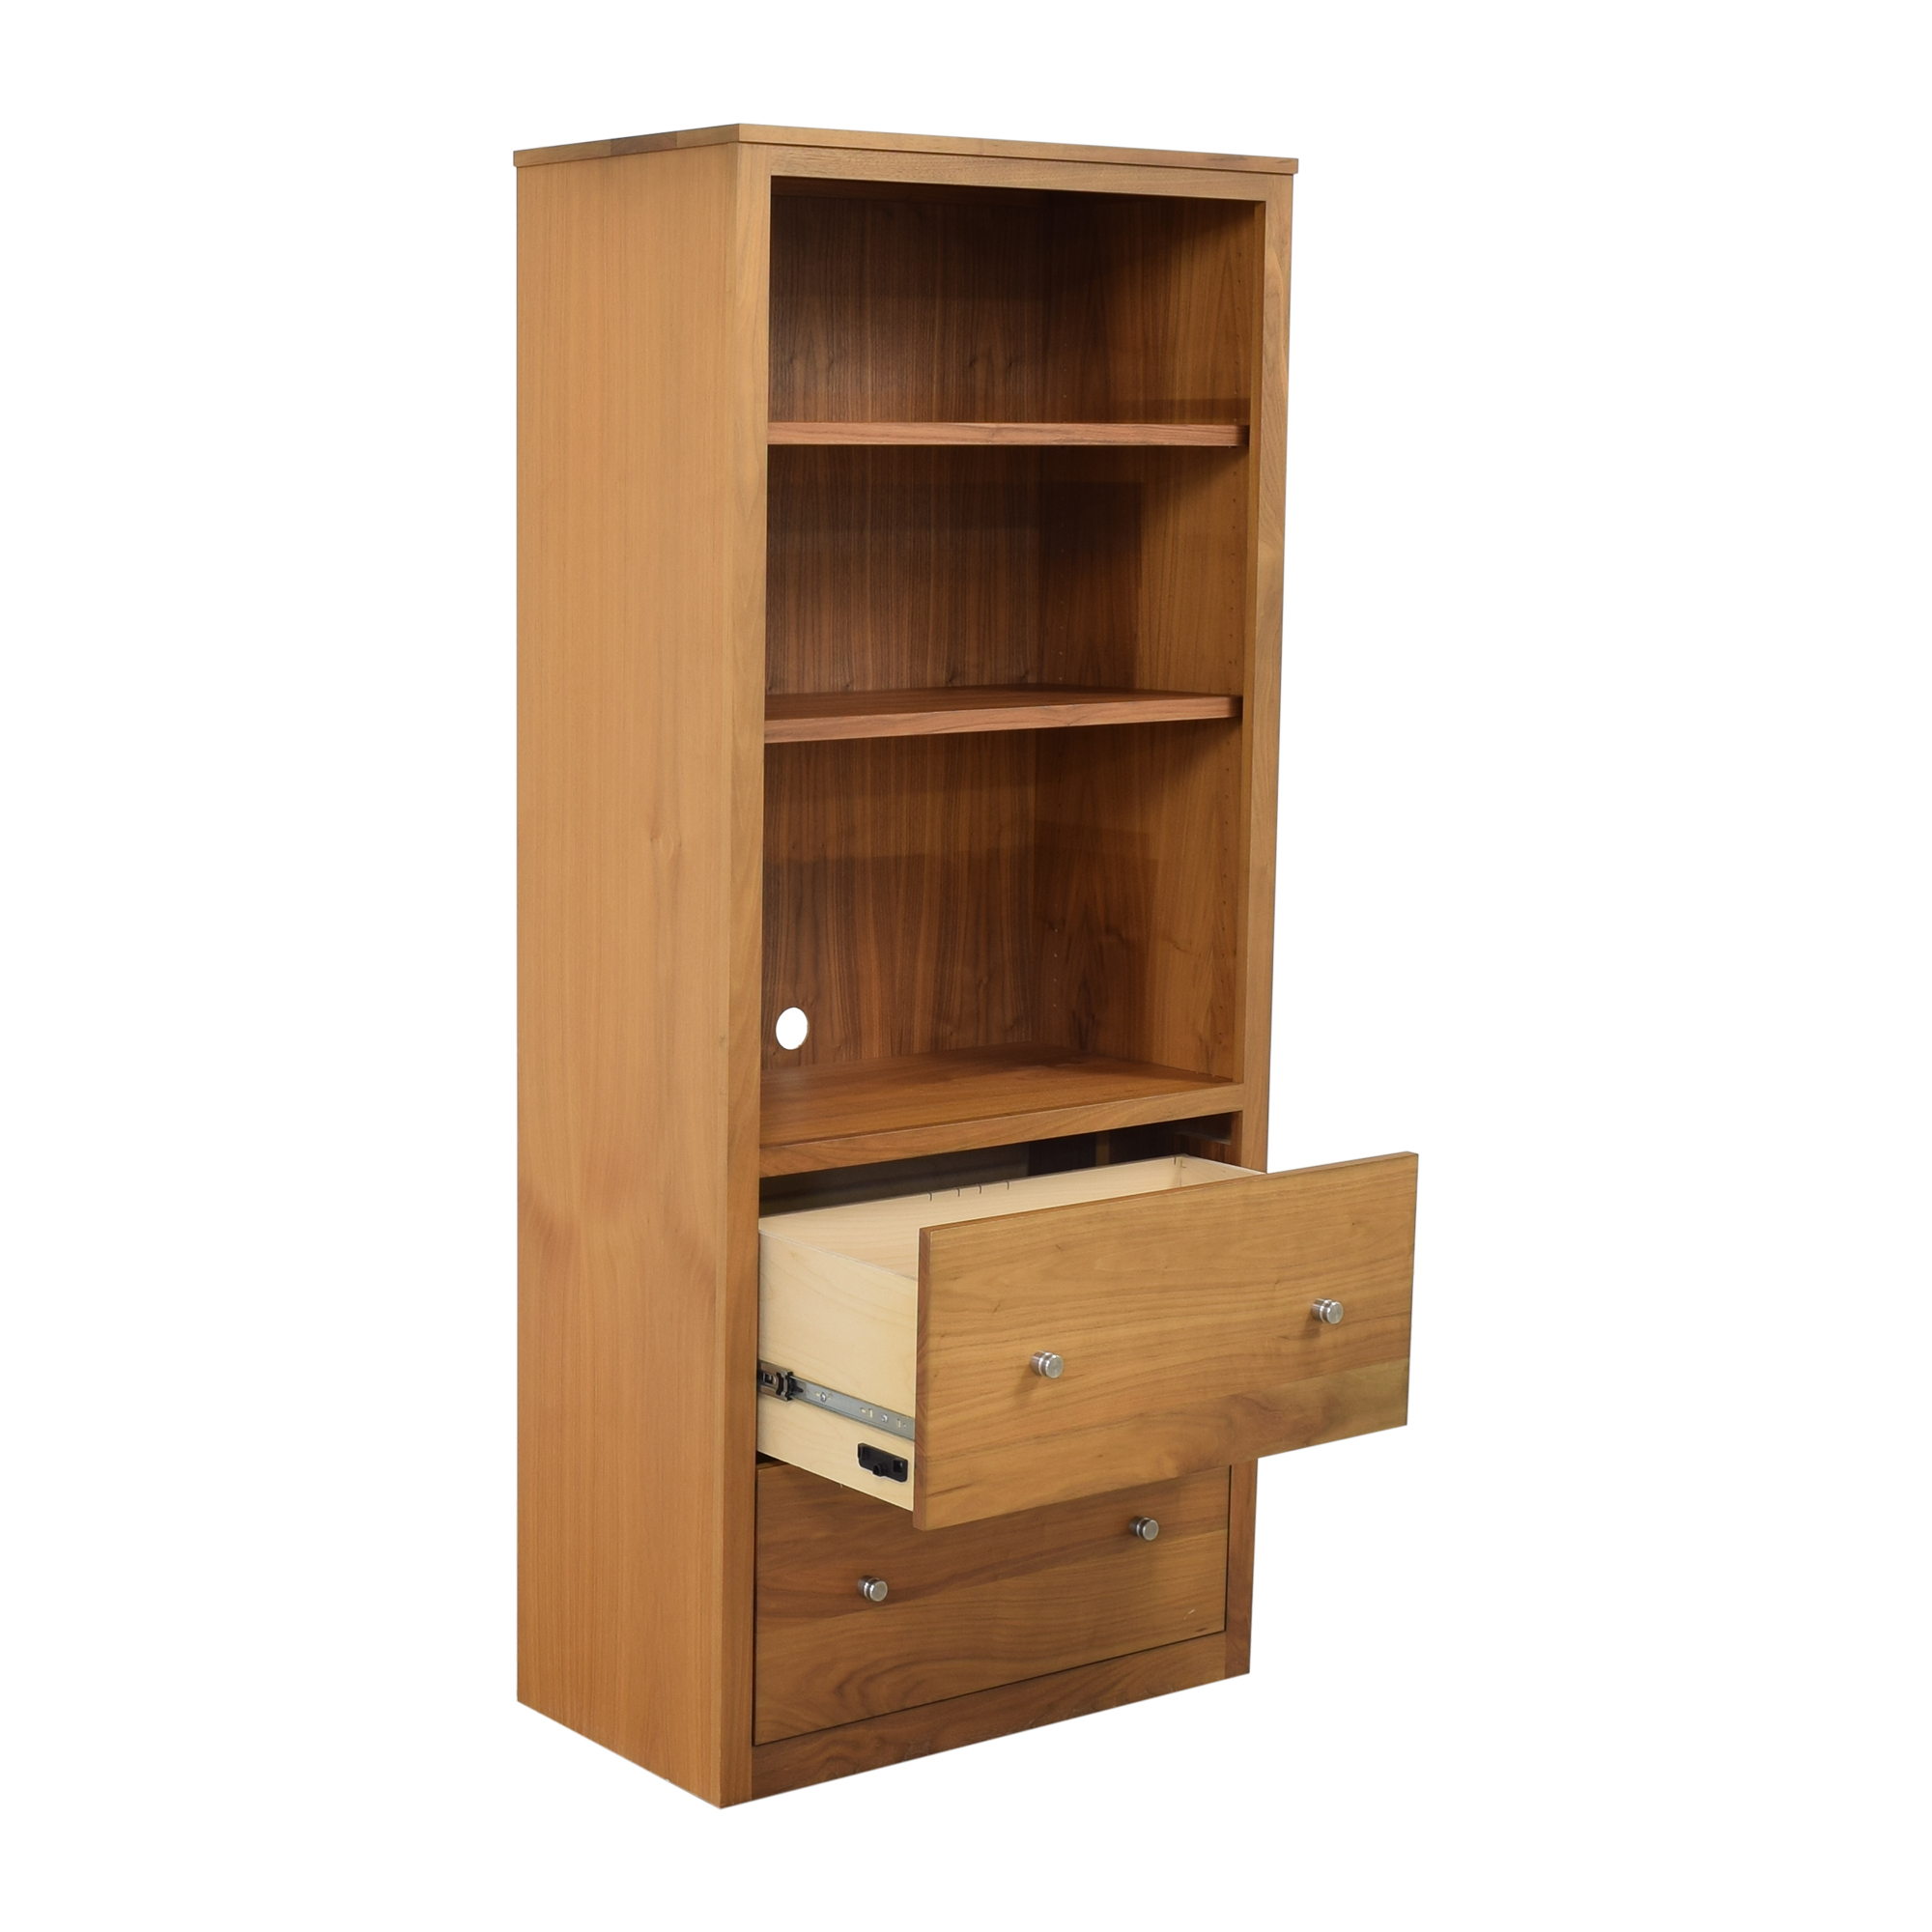 buy Room & Board Woodwind Bookcase with Drawers Room & Board Storage